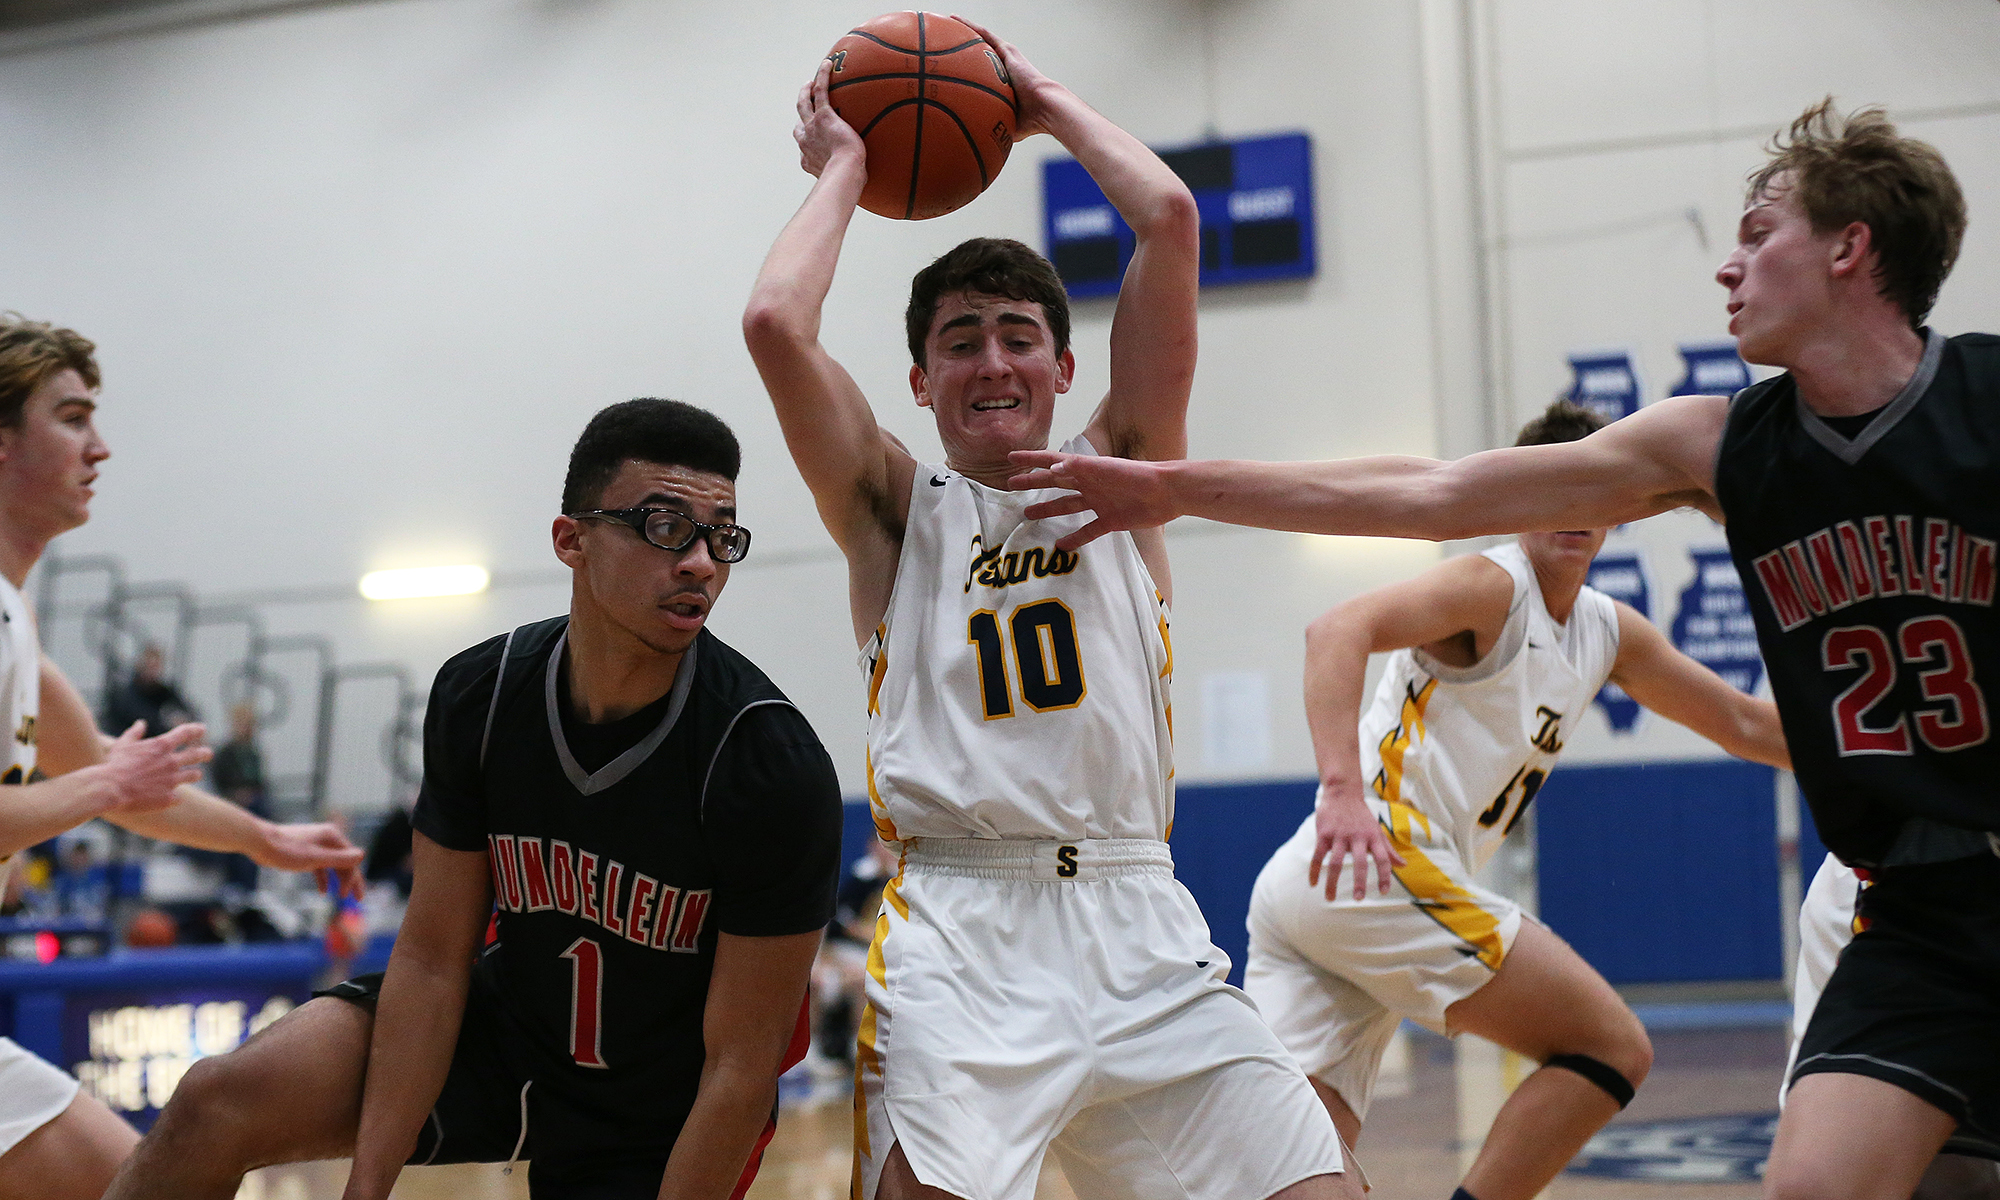 Glenbrook South's Danny Pauletto (10) grabs a rebound against Mundelein.